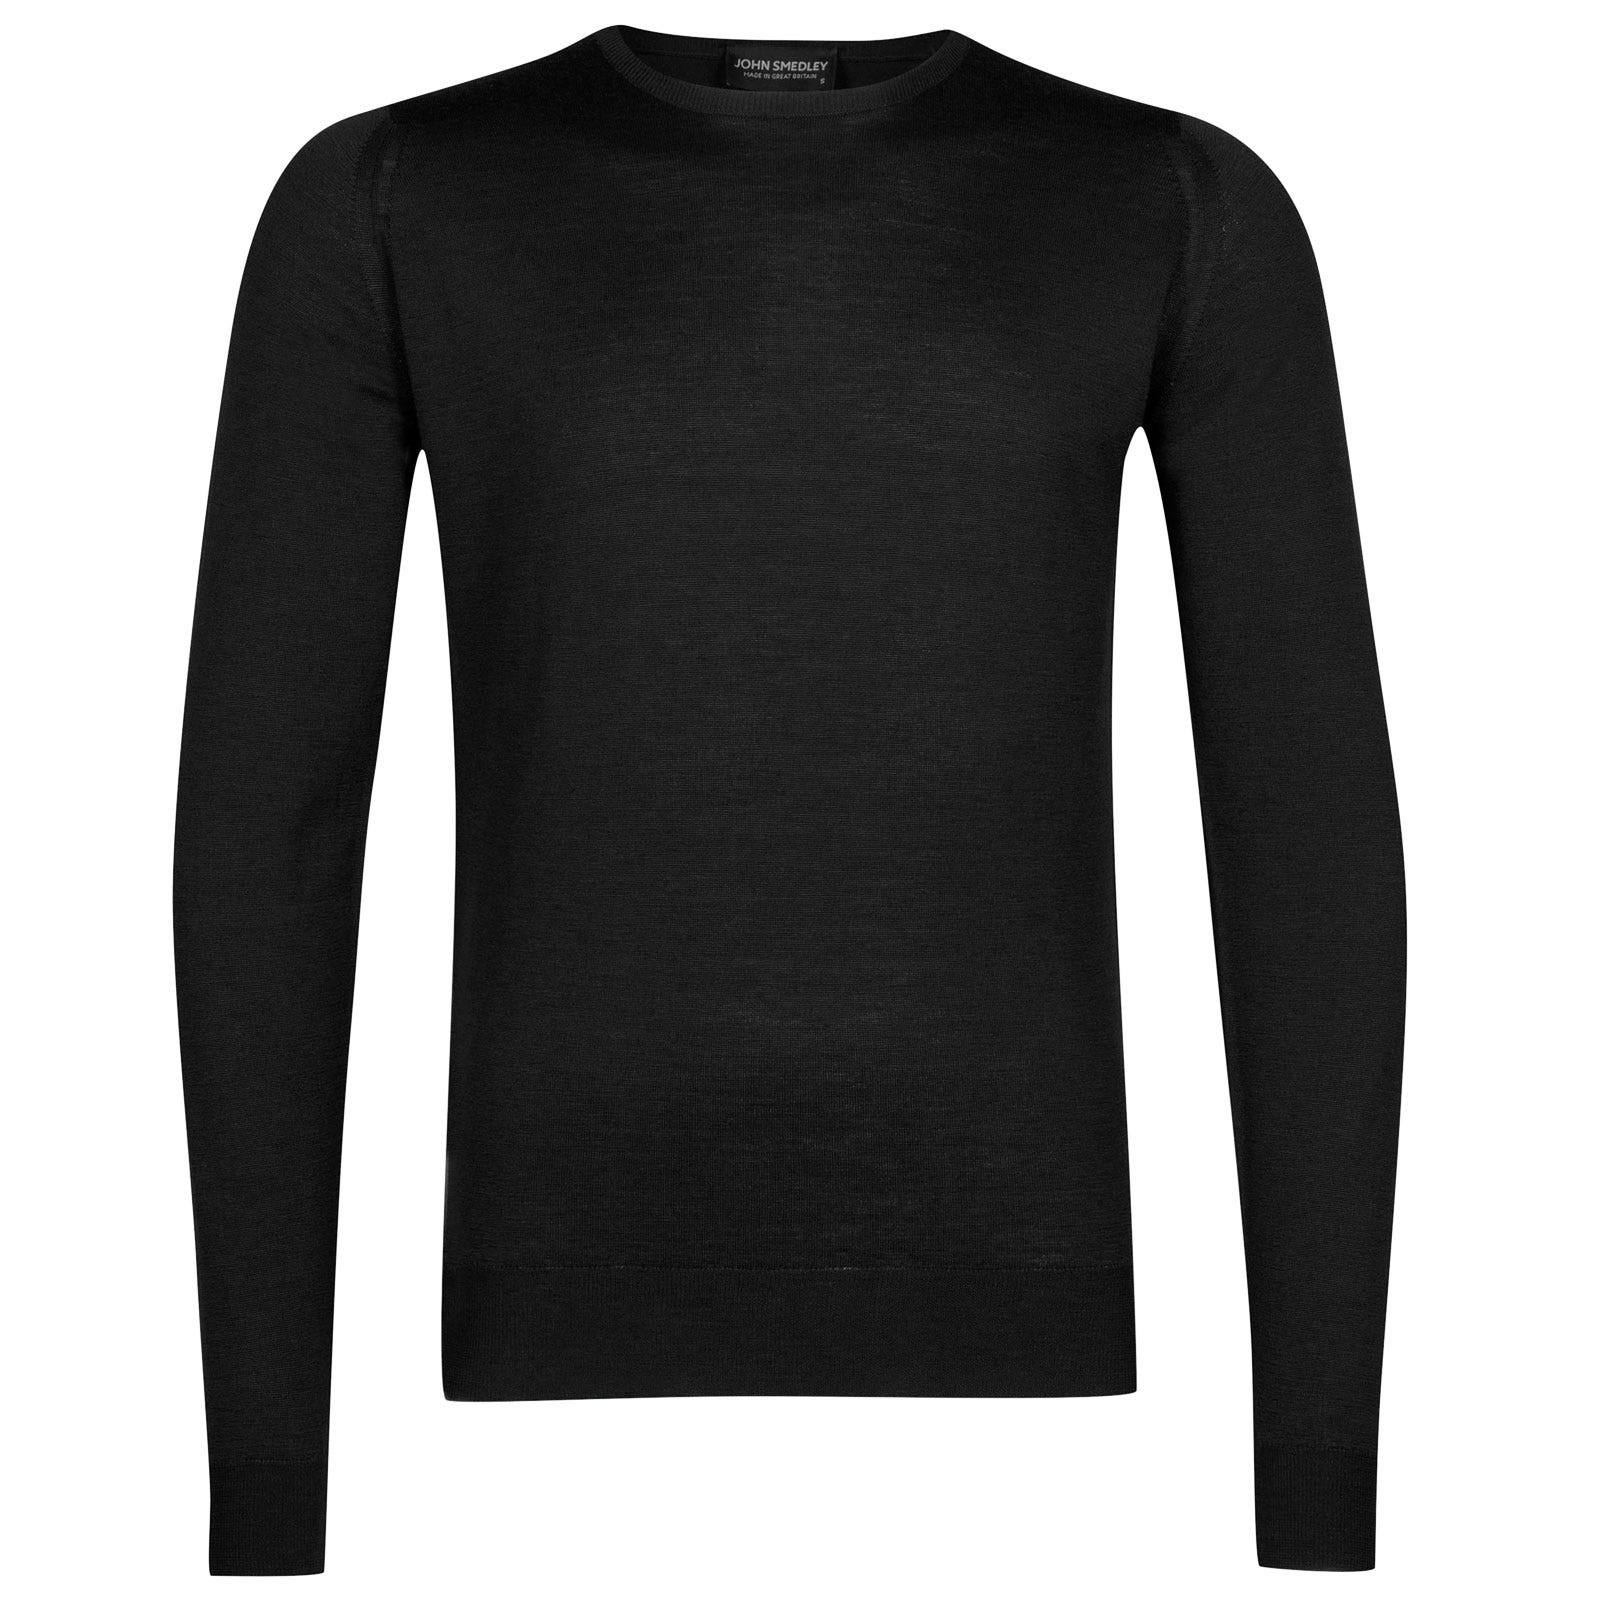 John Smedley lundy Merino Wool Pullover in Black-M